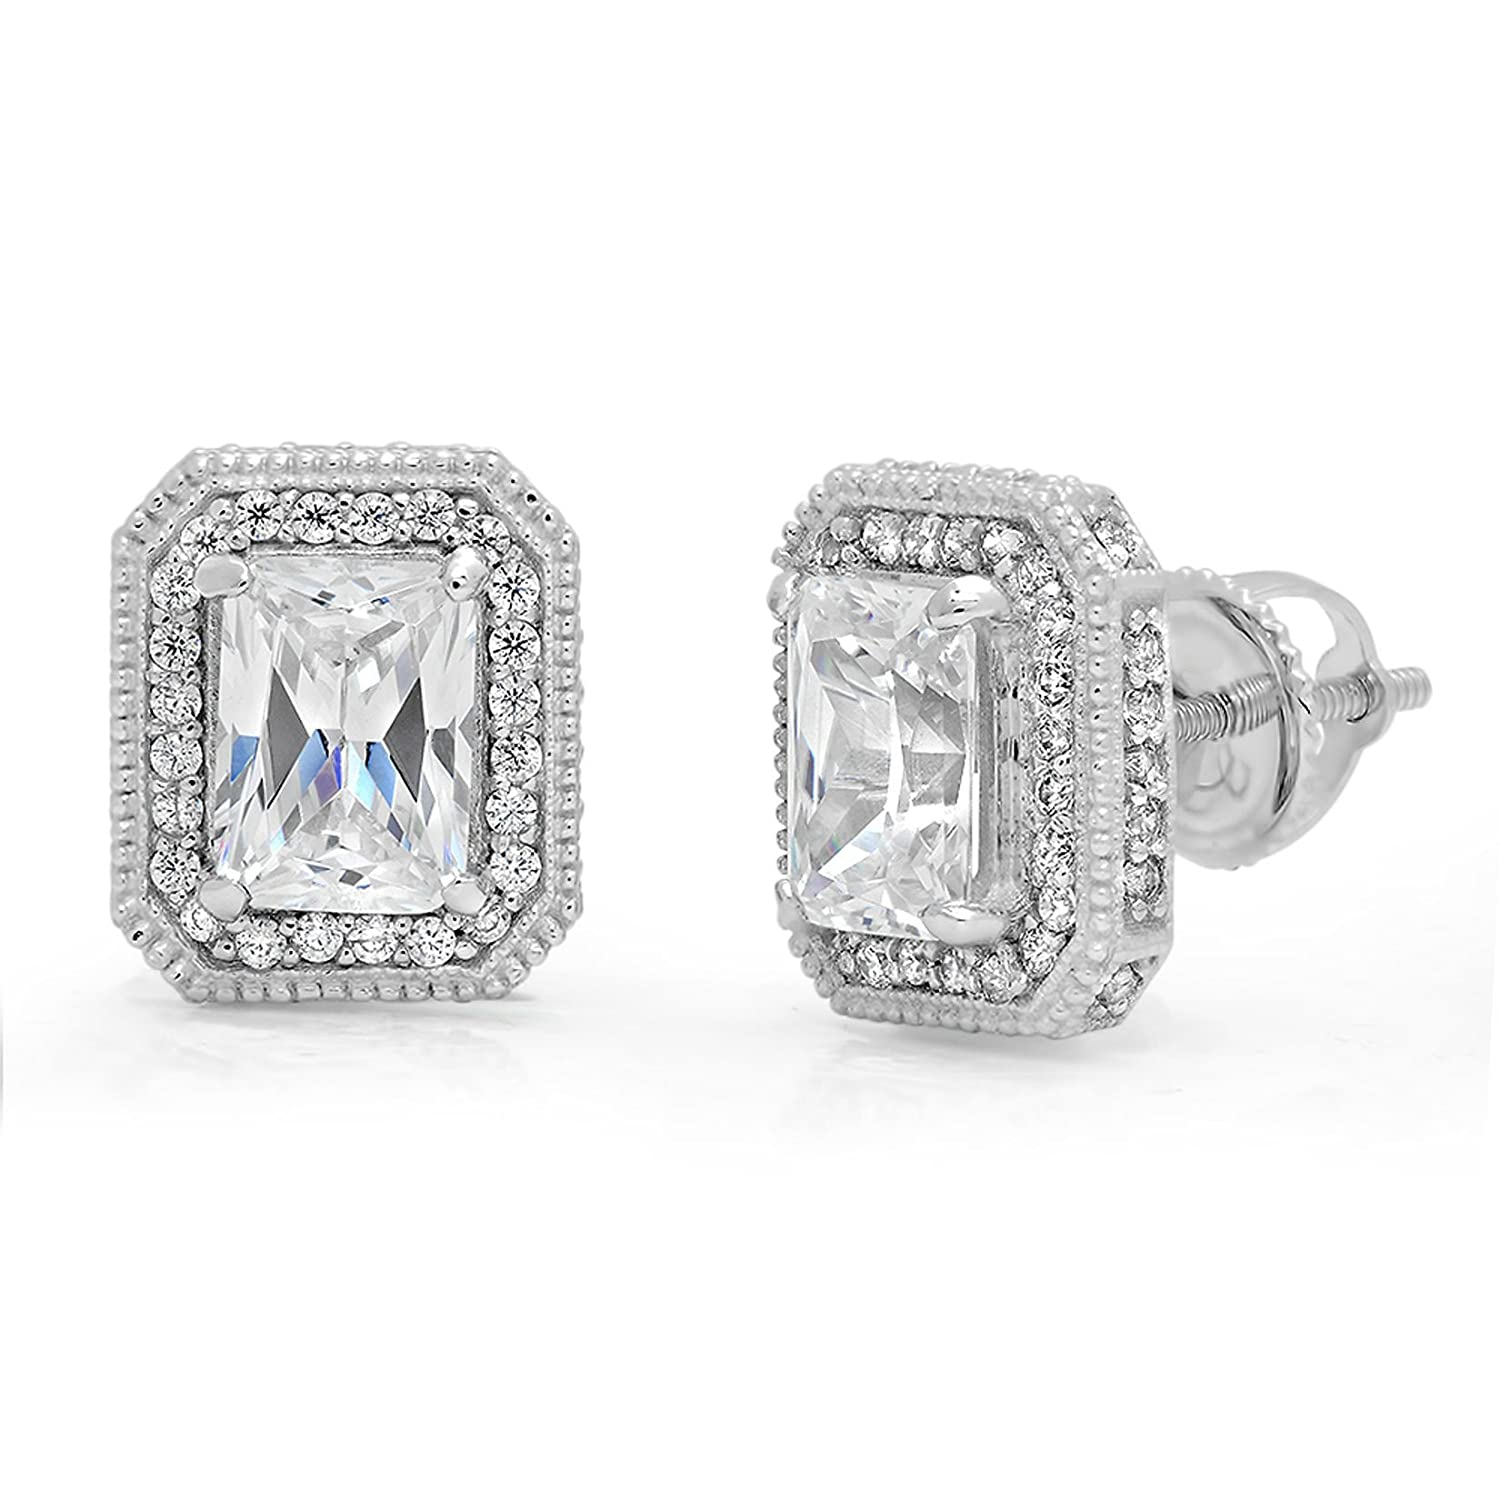 f6d728ae5 Amazon.com: 3.98CT Emerald Cut Simulated Diamond CZ SOLITAIRE HALO STUD  EARRINGS Solid 14K White GOLD Screw Back: Jewelry